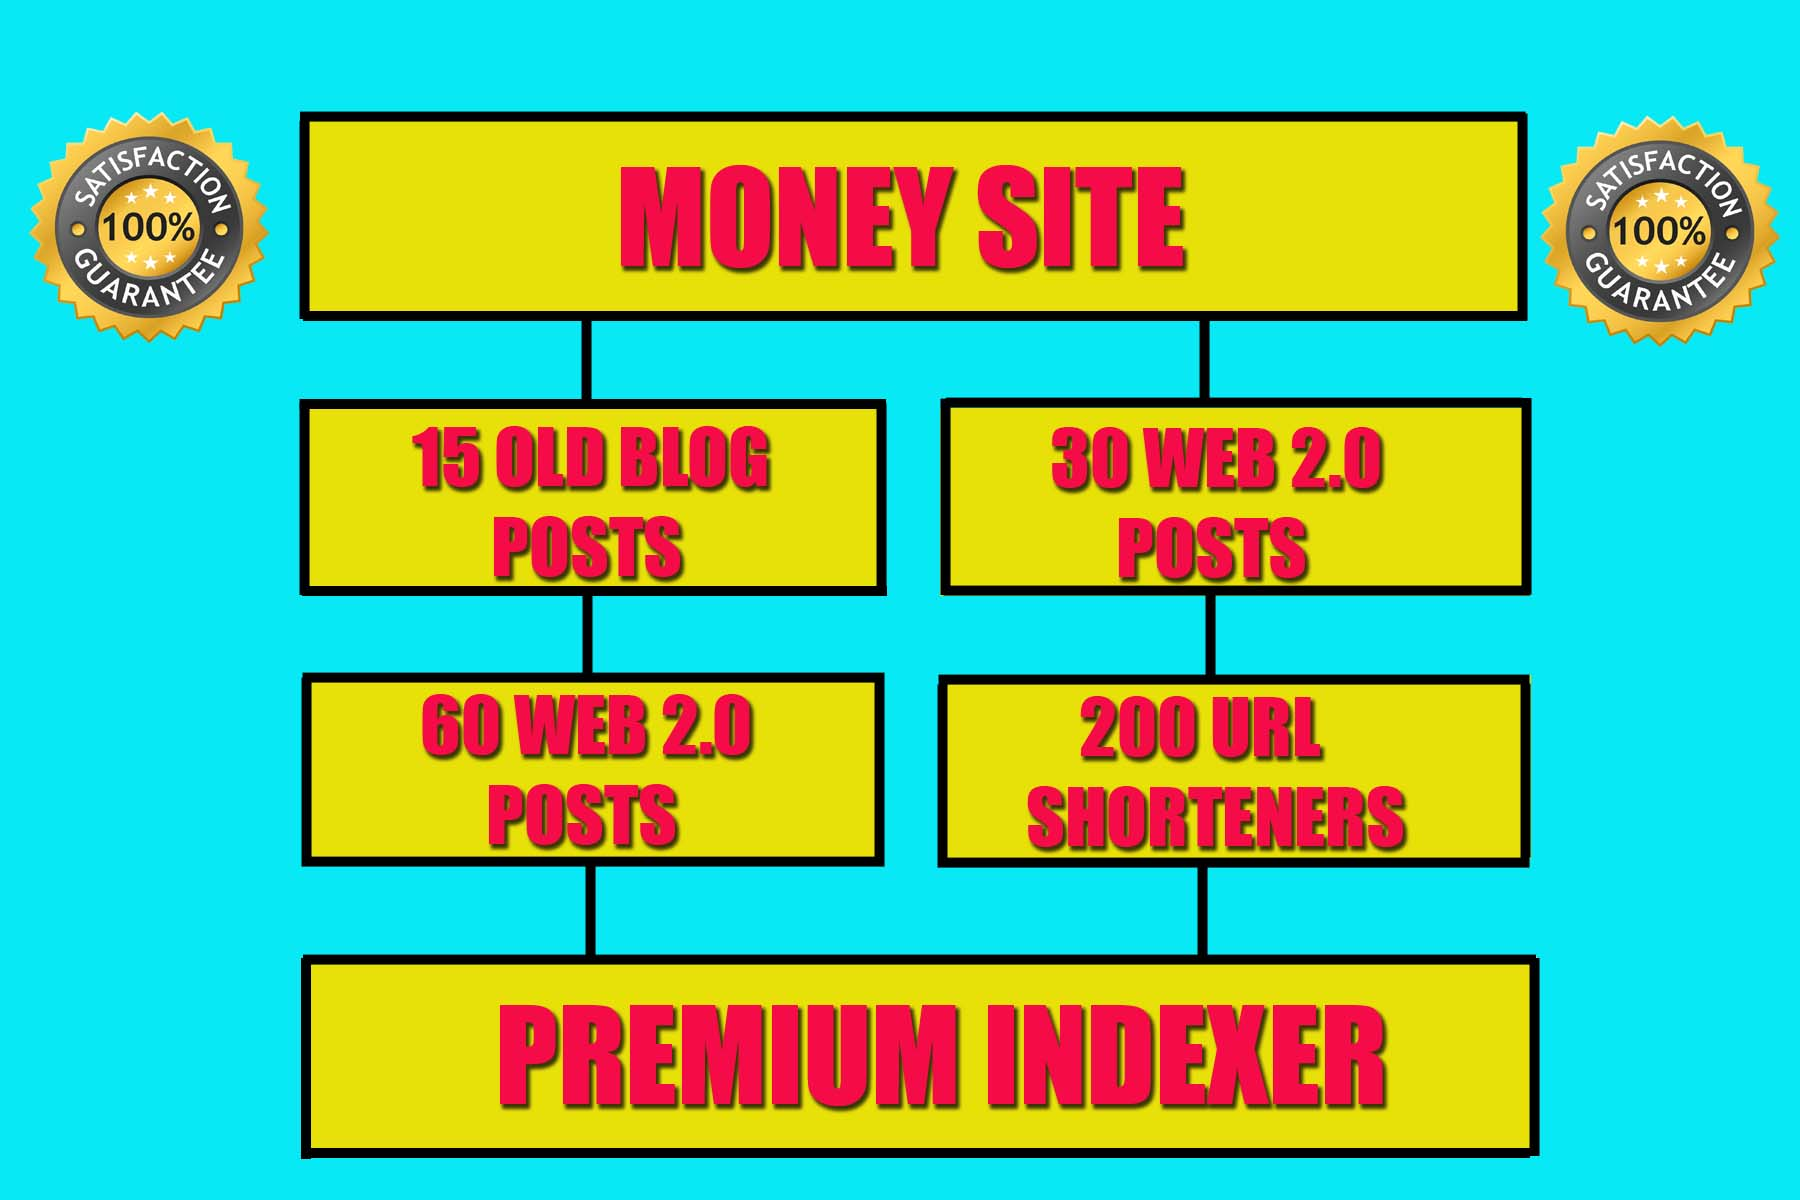 White Hat SEO Package - Catapult Your Rankings With My High Pr Seo Authority Links